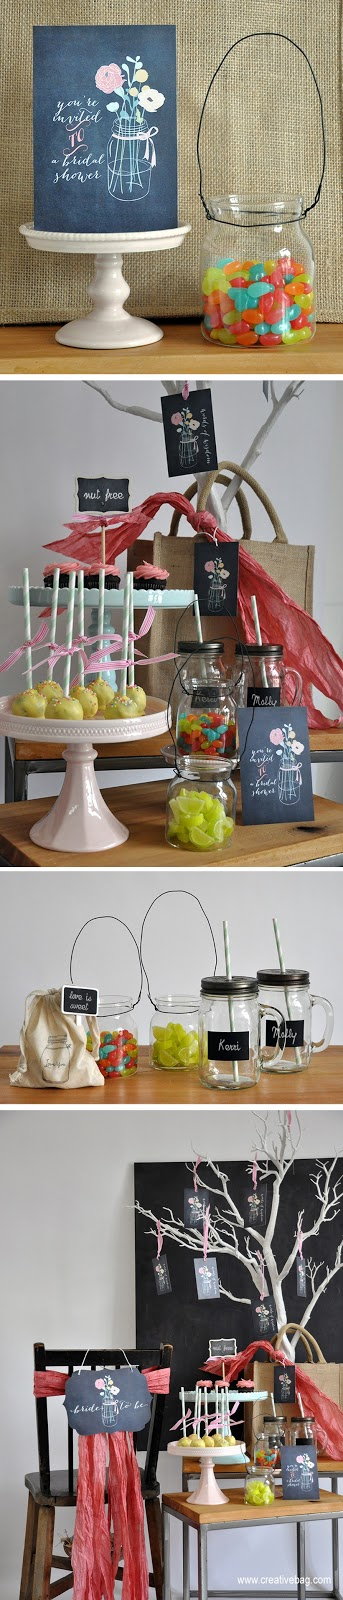 bridal shower ideas from Creative Bag